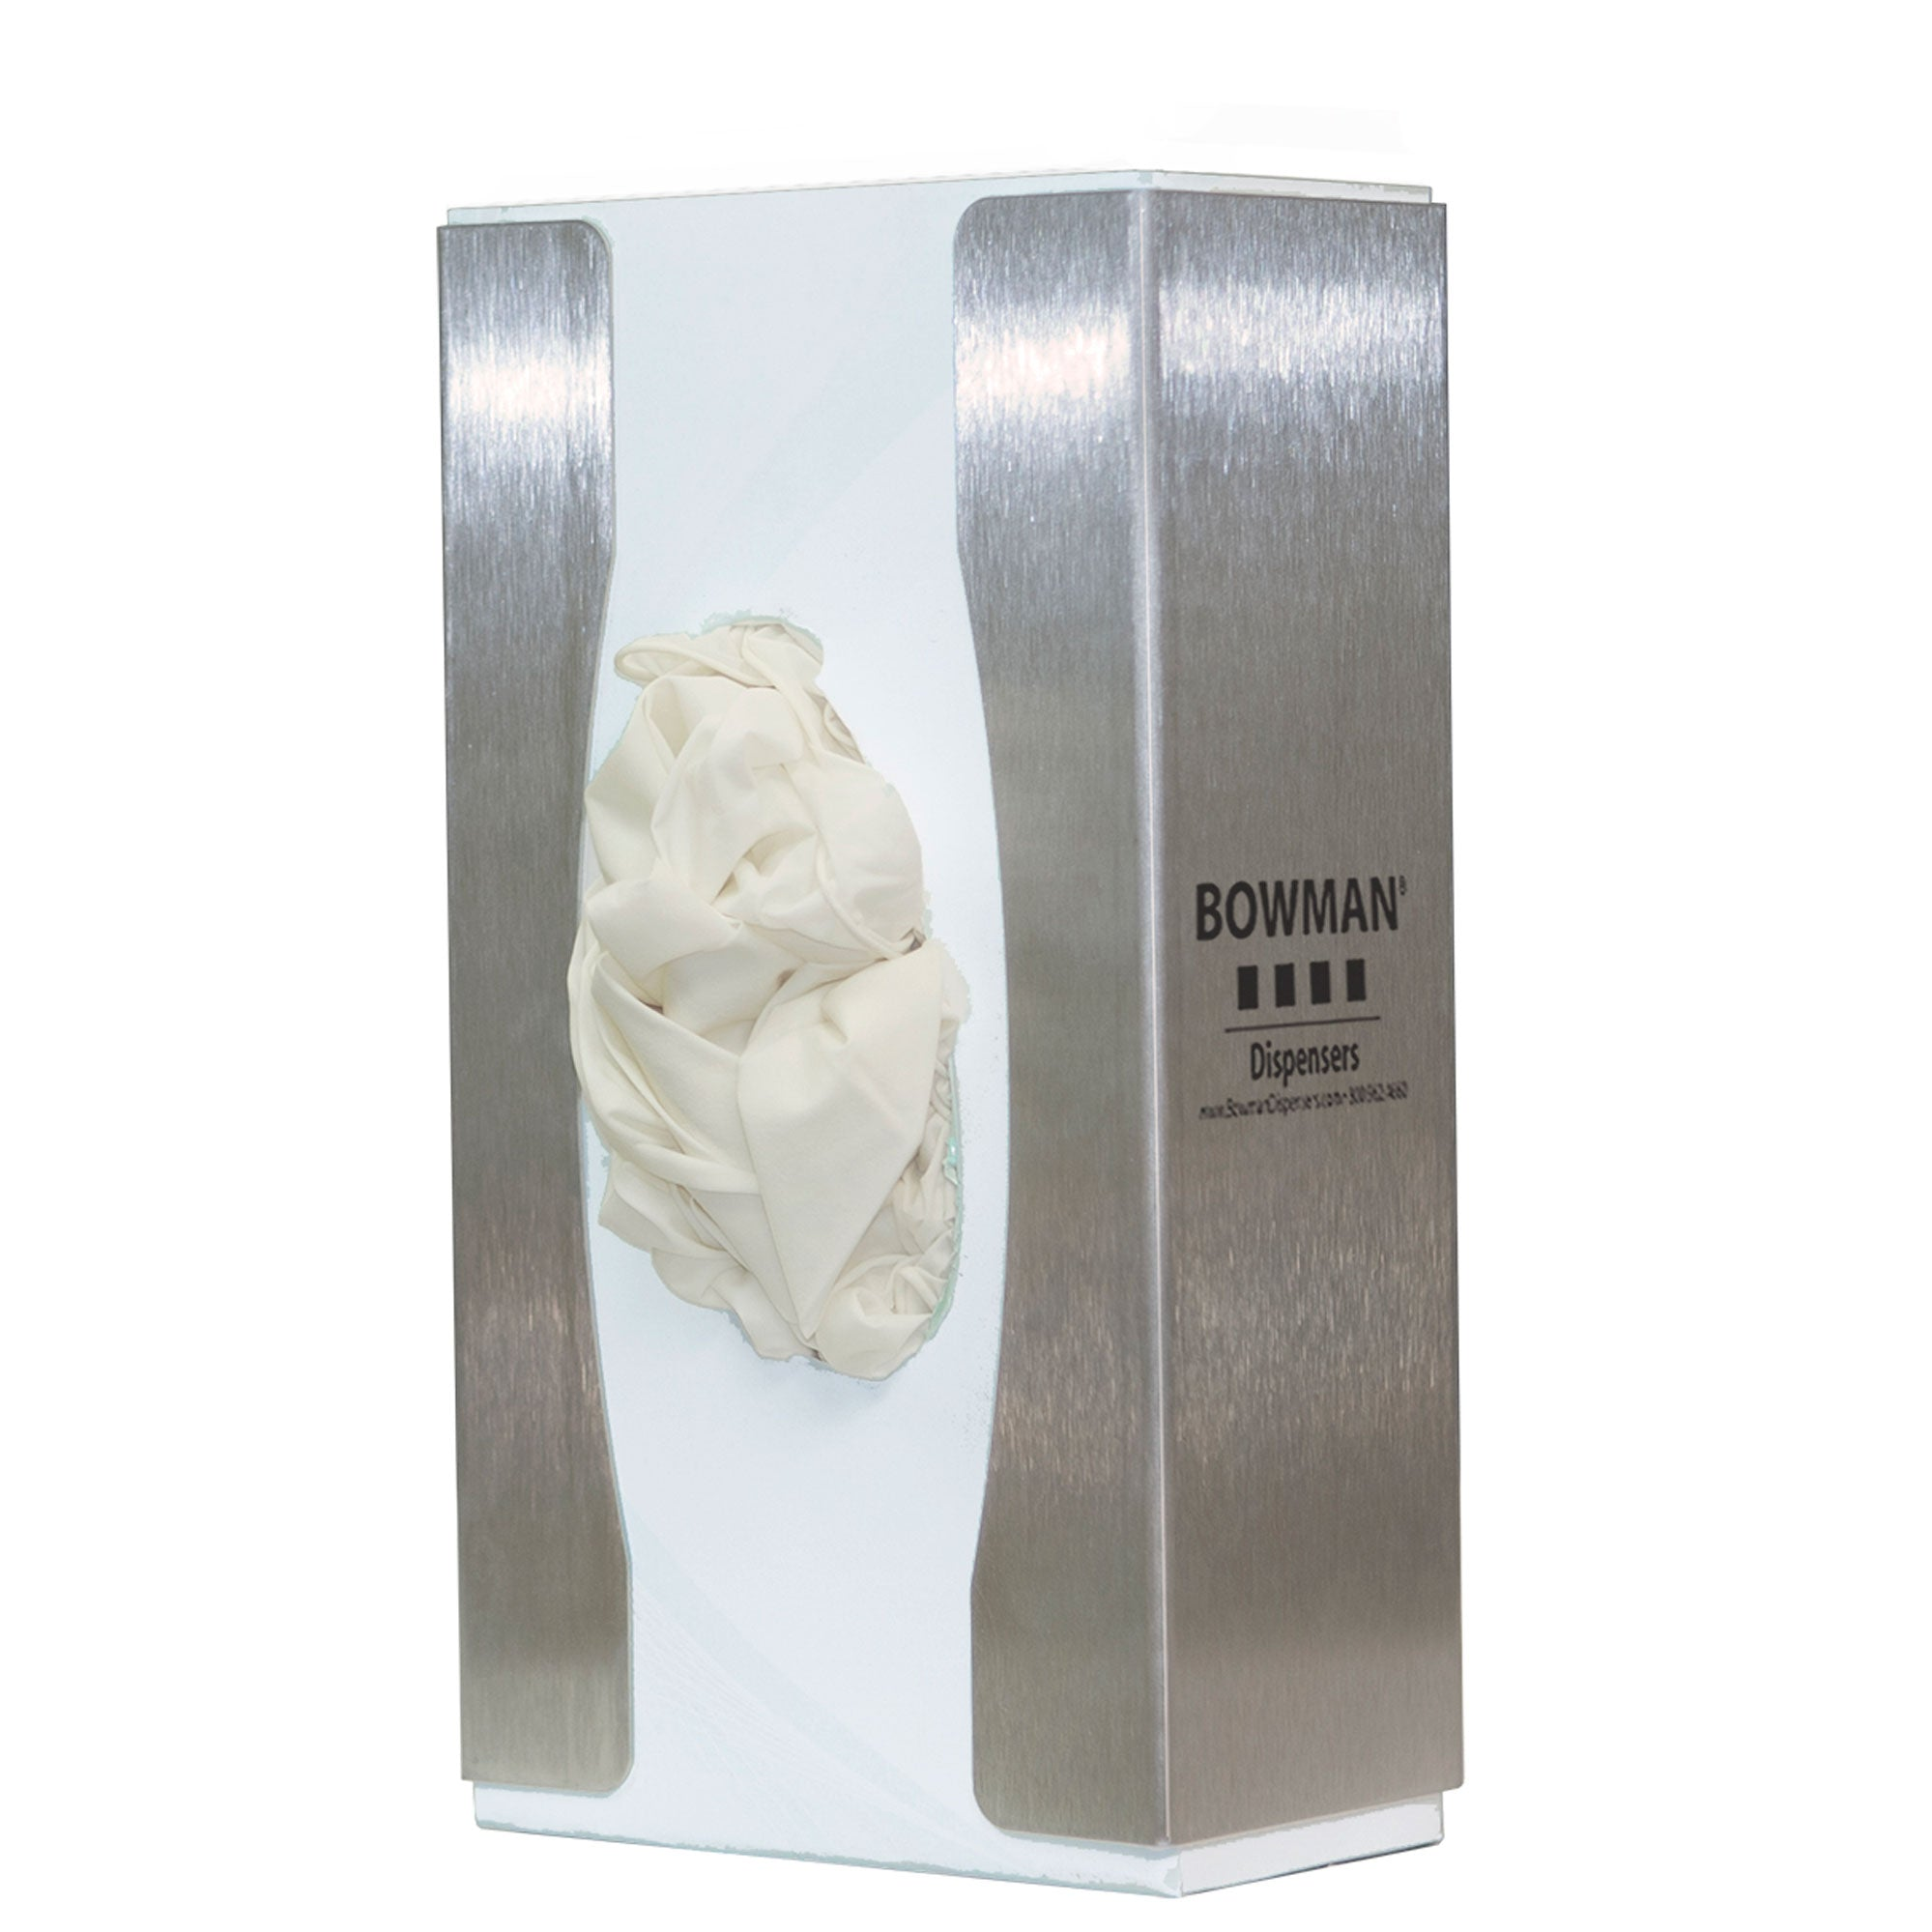 Bowman Stainless Steel Slim Single Food Service Glove Box Dispenser